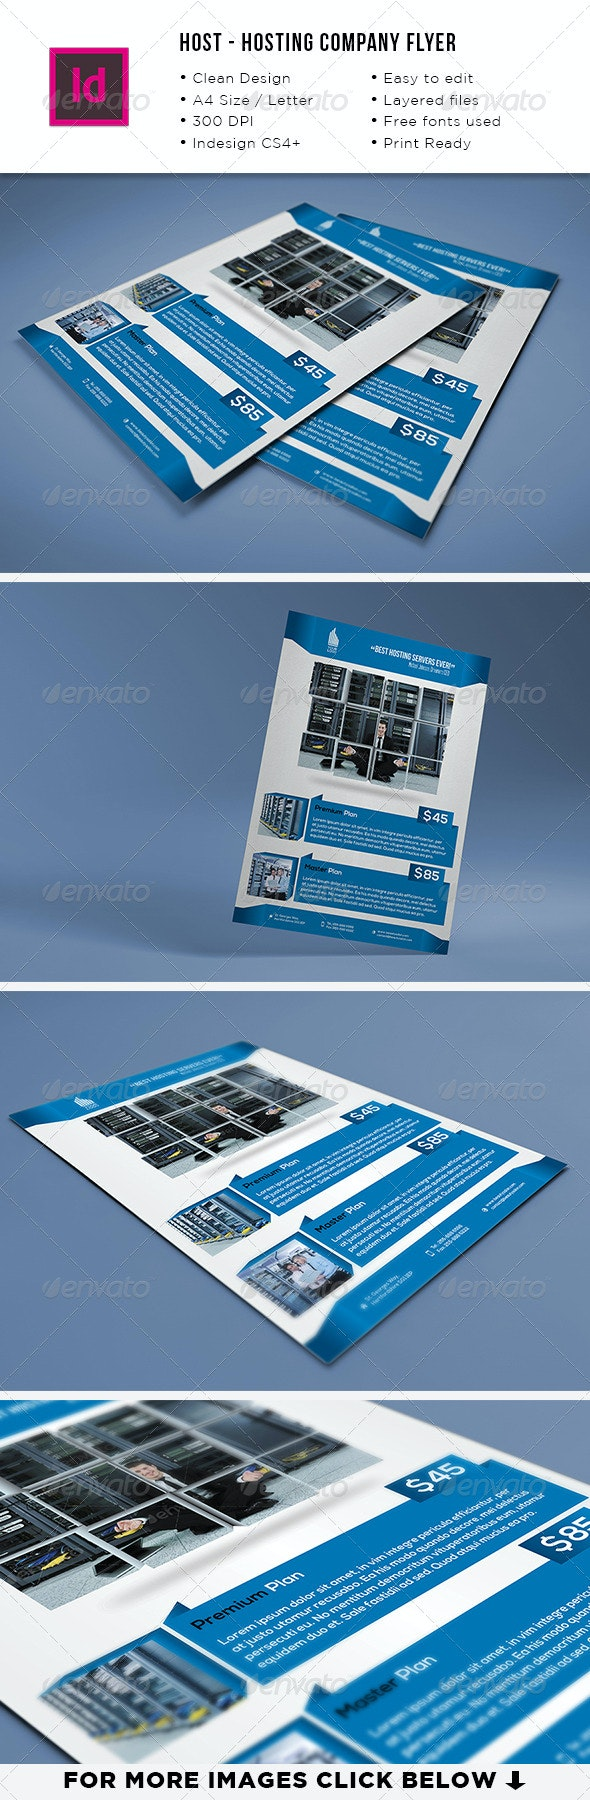 Host - Hosting Company A4 & Letter Flyer - Commerce Flyers